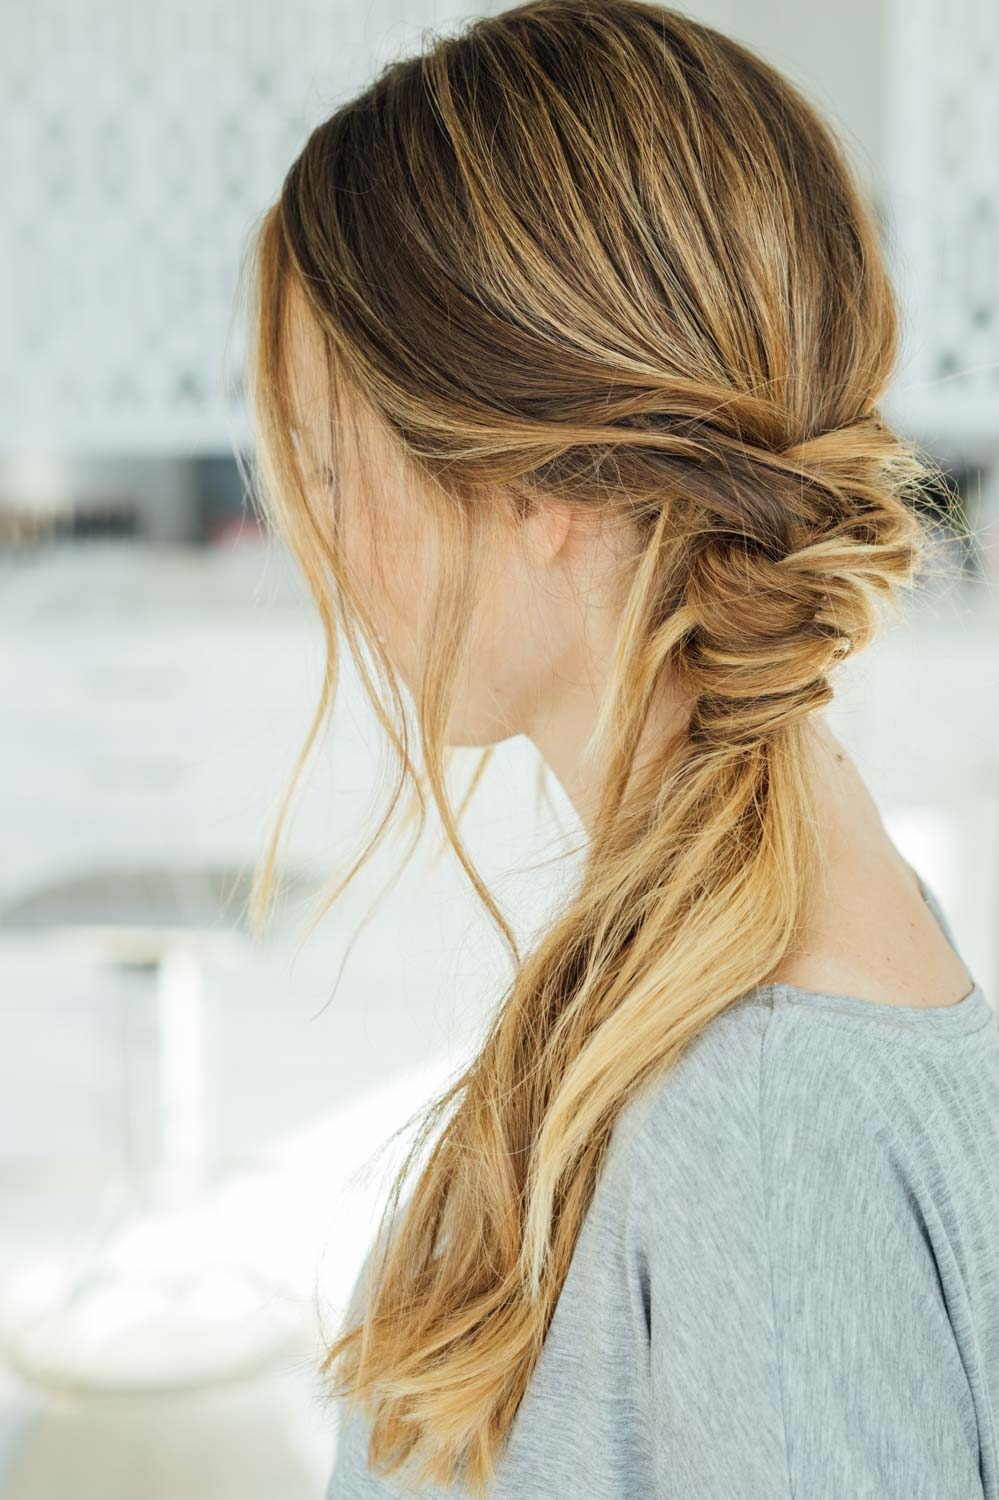 16 Easy Hairstyles For Hot Summer Days The Everygirl